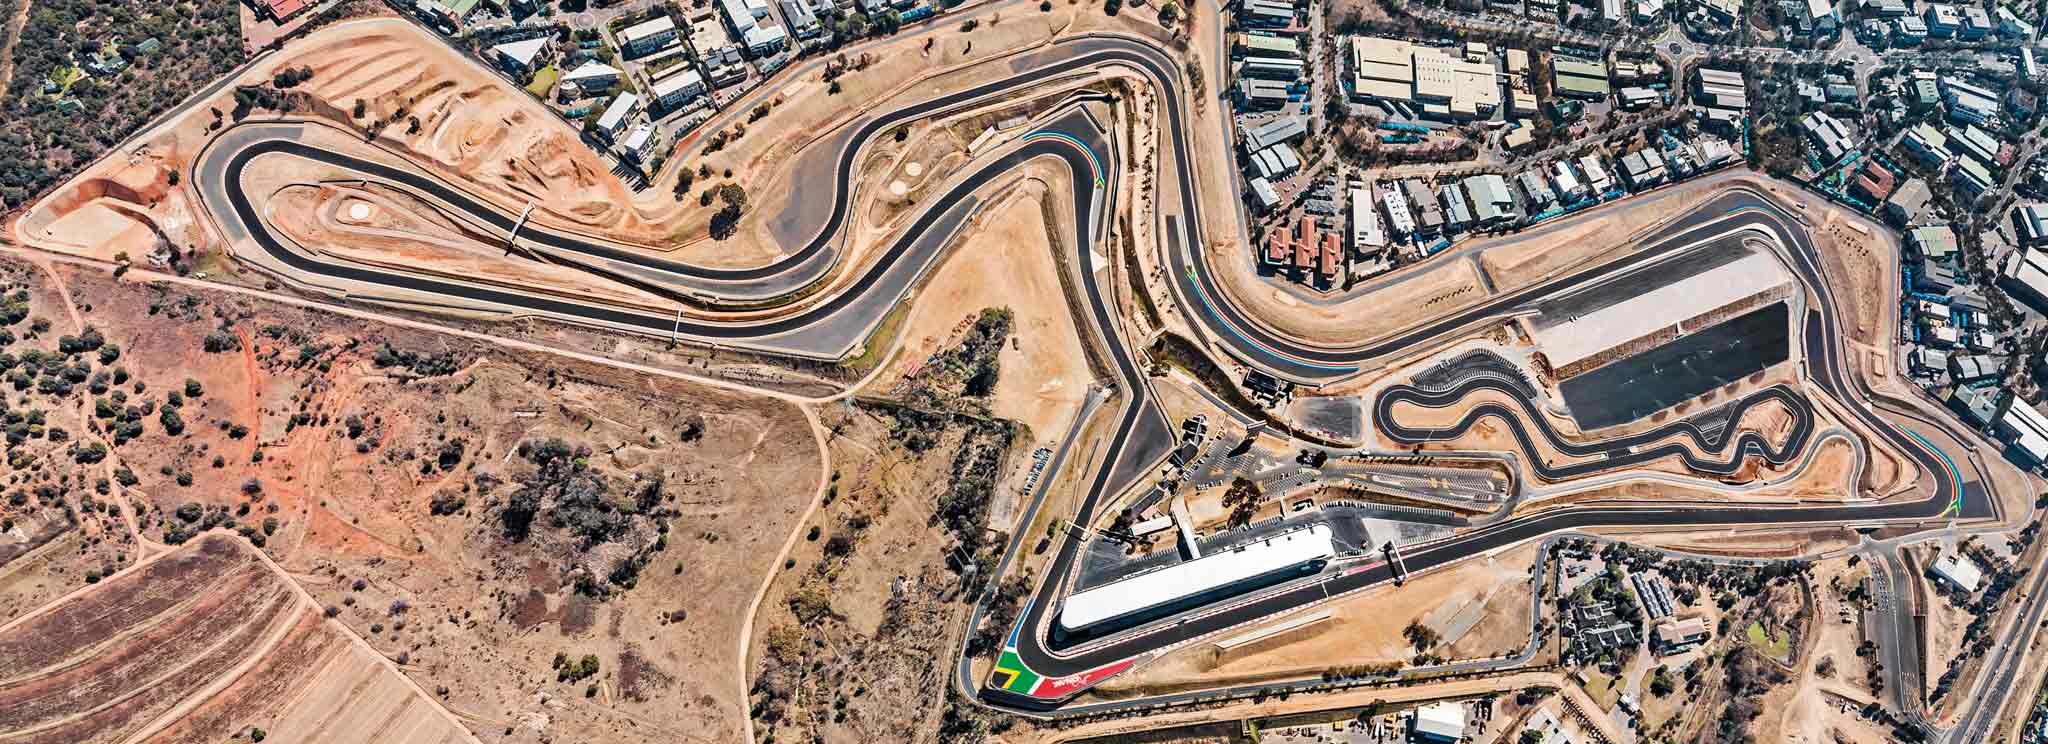 Kyalami grand prix circuit home for Classic house tracks 2000